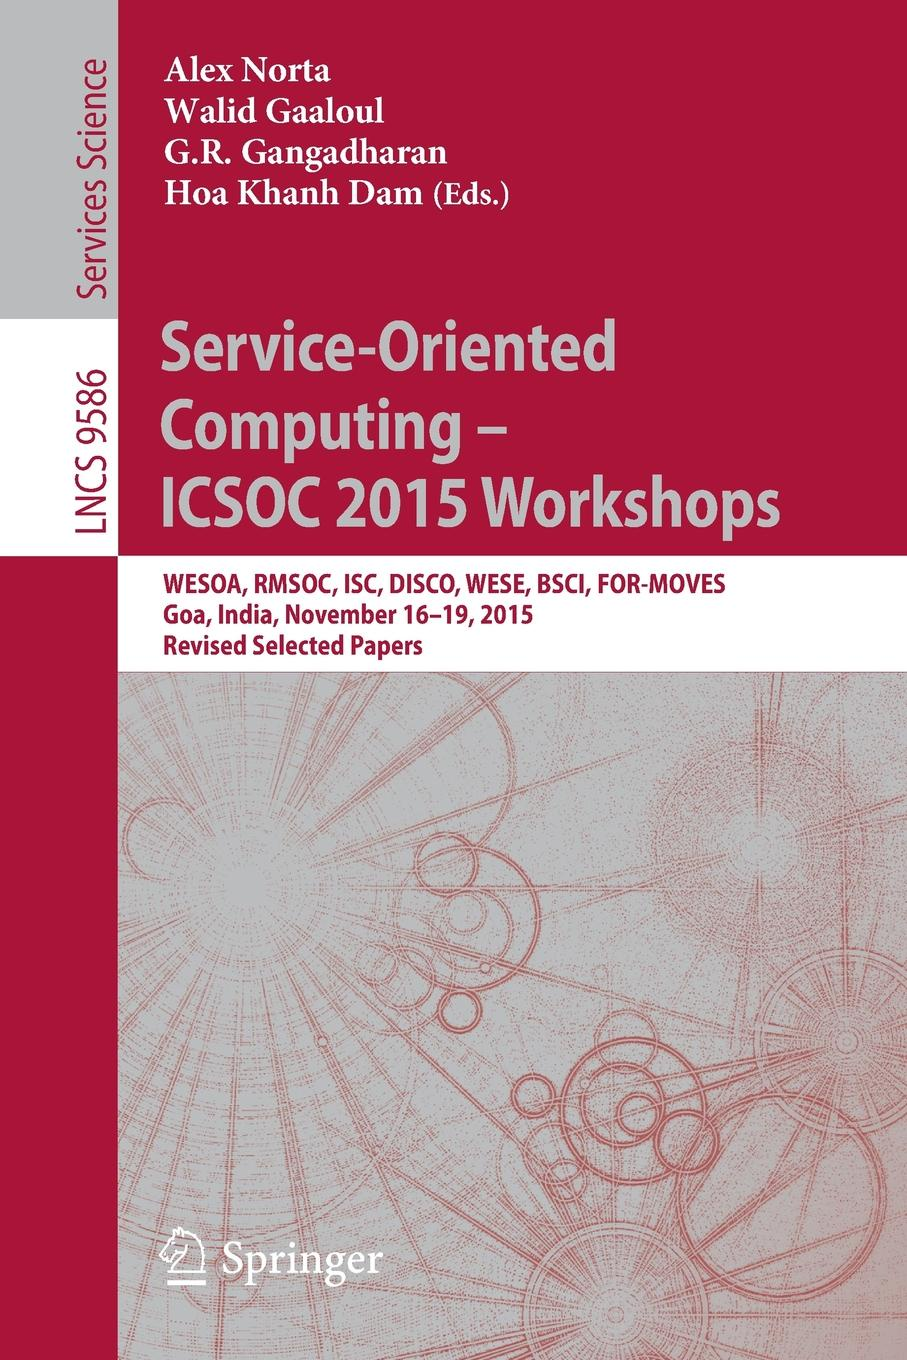 Service-Oriented Computing - ICSOC 2015 Workshops. WESOA, RMSOC, ISC, DISCO, WESE, BSCI, FOR-MOVES, Goa, India, November 16-19, 2015, Revised Selected Papers bubendorfer kris market oriented grid and utility computing